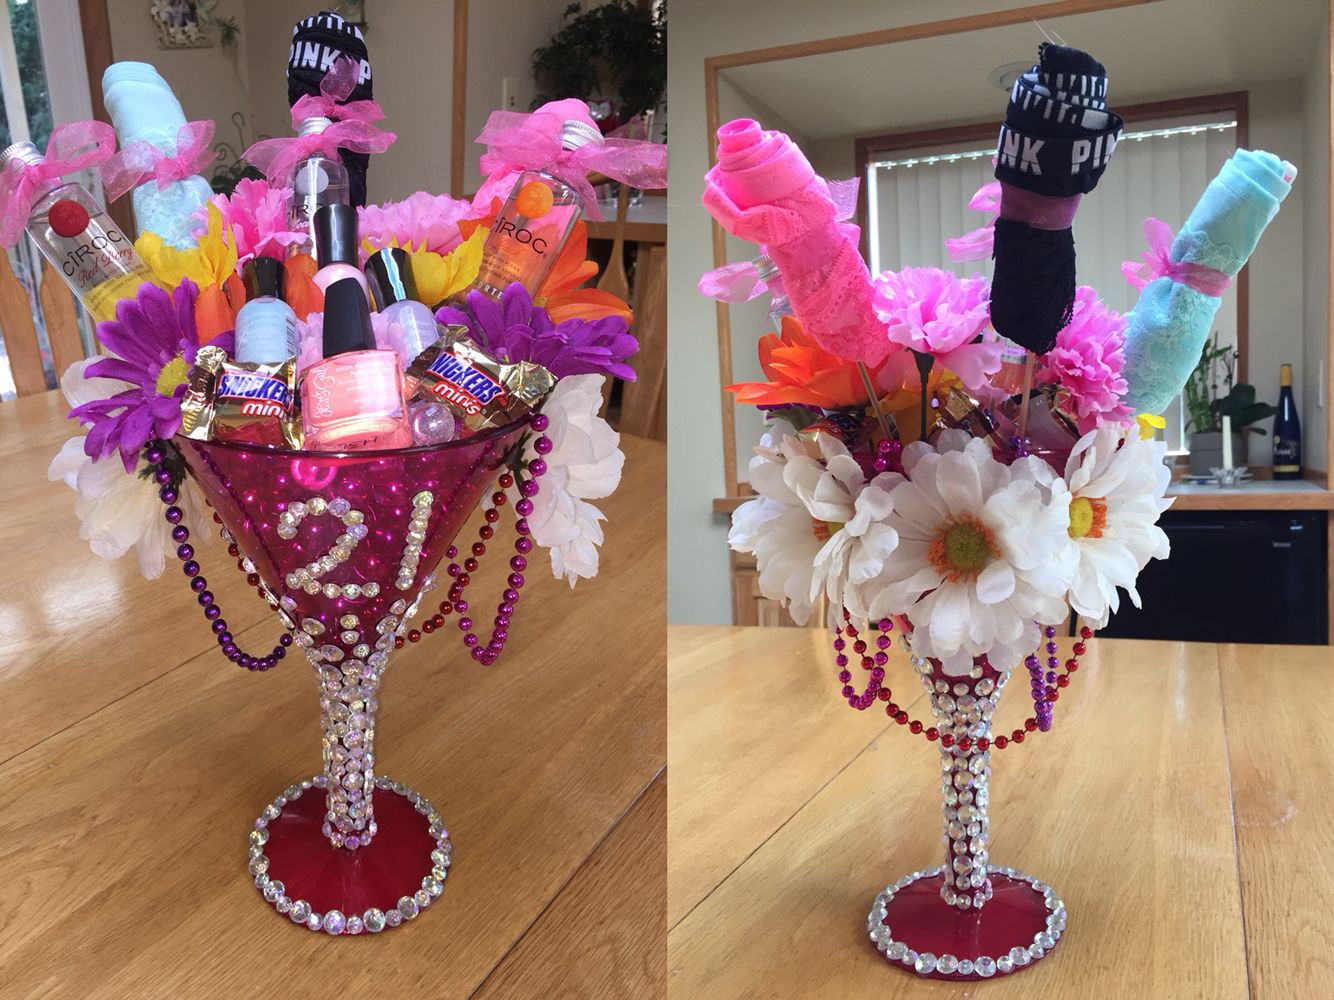 Best ideas about Gift Ideas For 21St Birthday Female . Save or Pin 21st birthday t idea for girls Now.